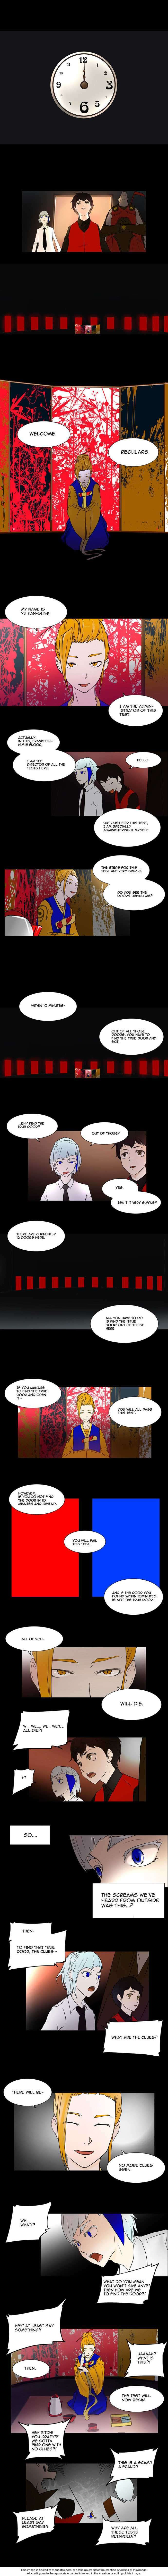 Tower of God 12 Page 2